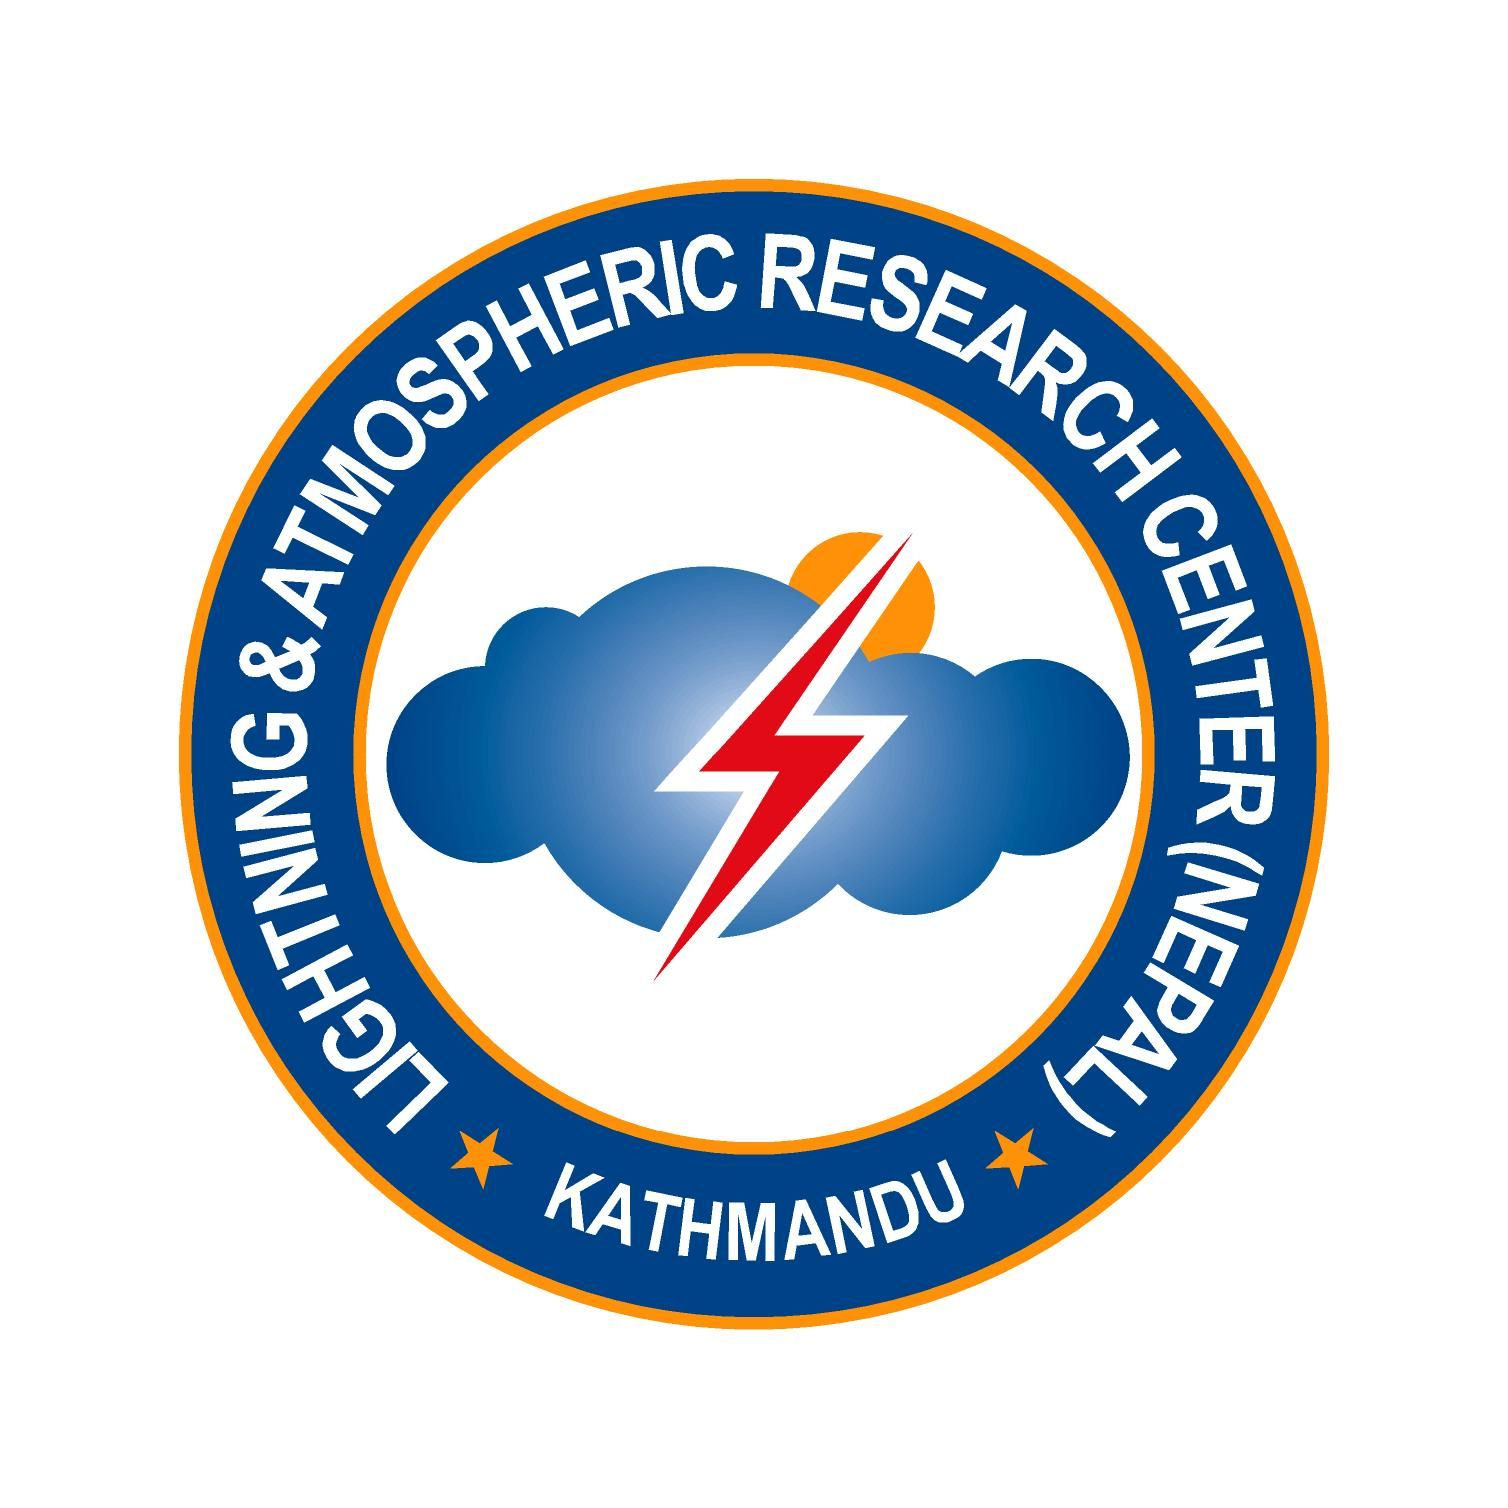 LARC - Lightning & Atmospheric Research Center (Nepal)